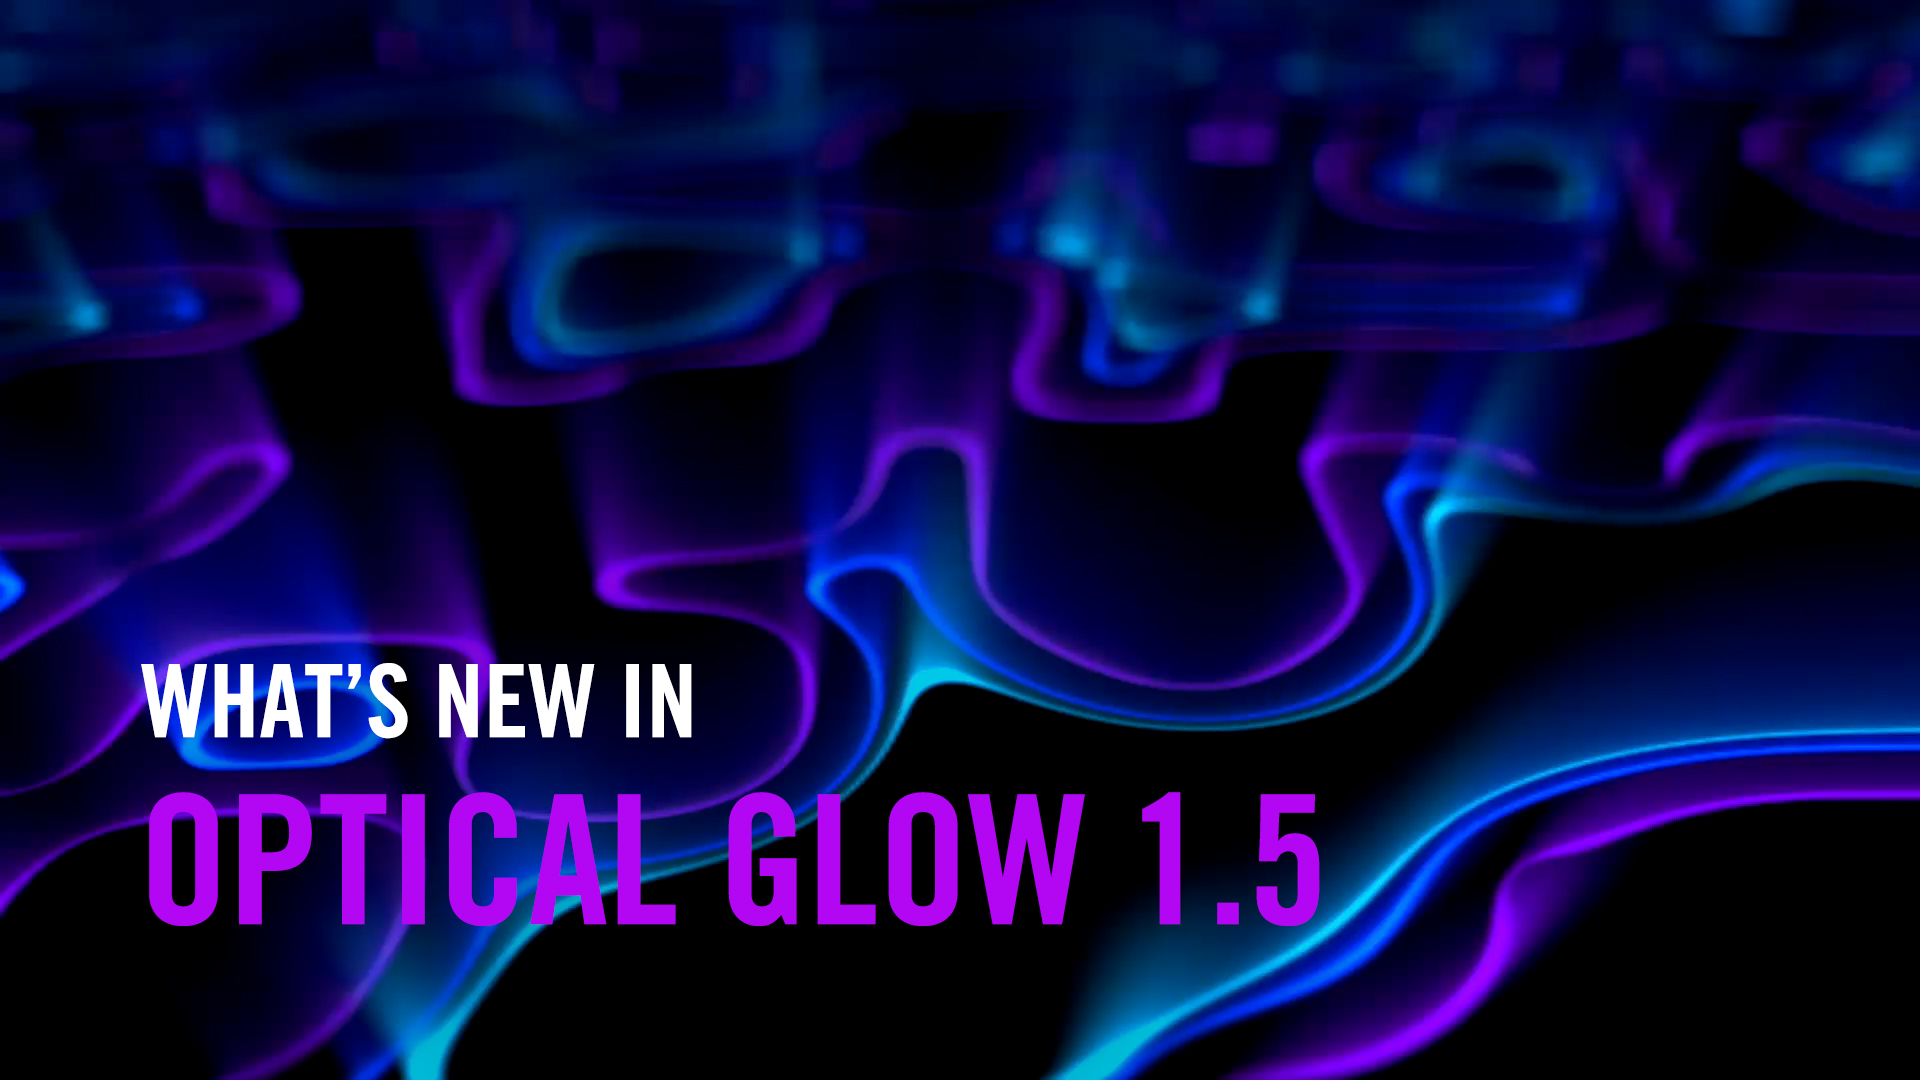 What's new in Optical Glow